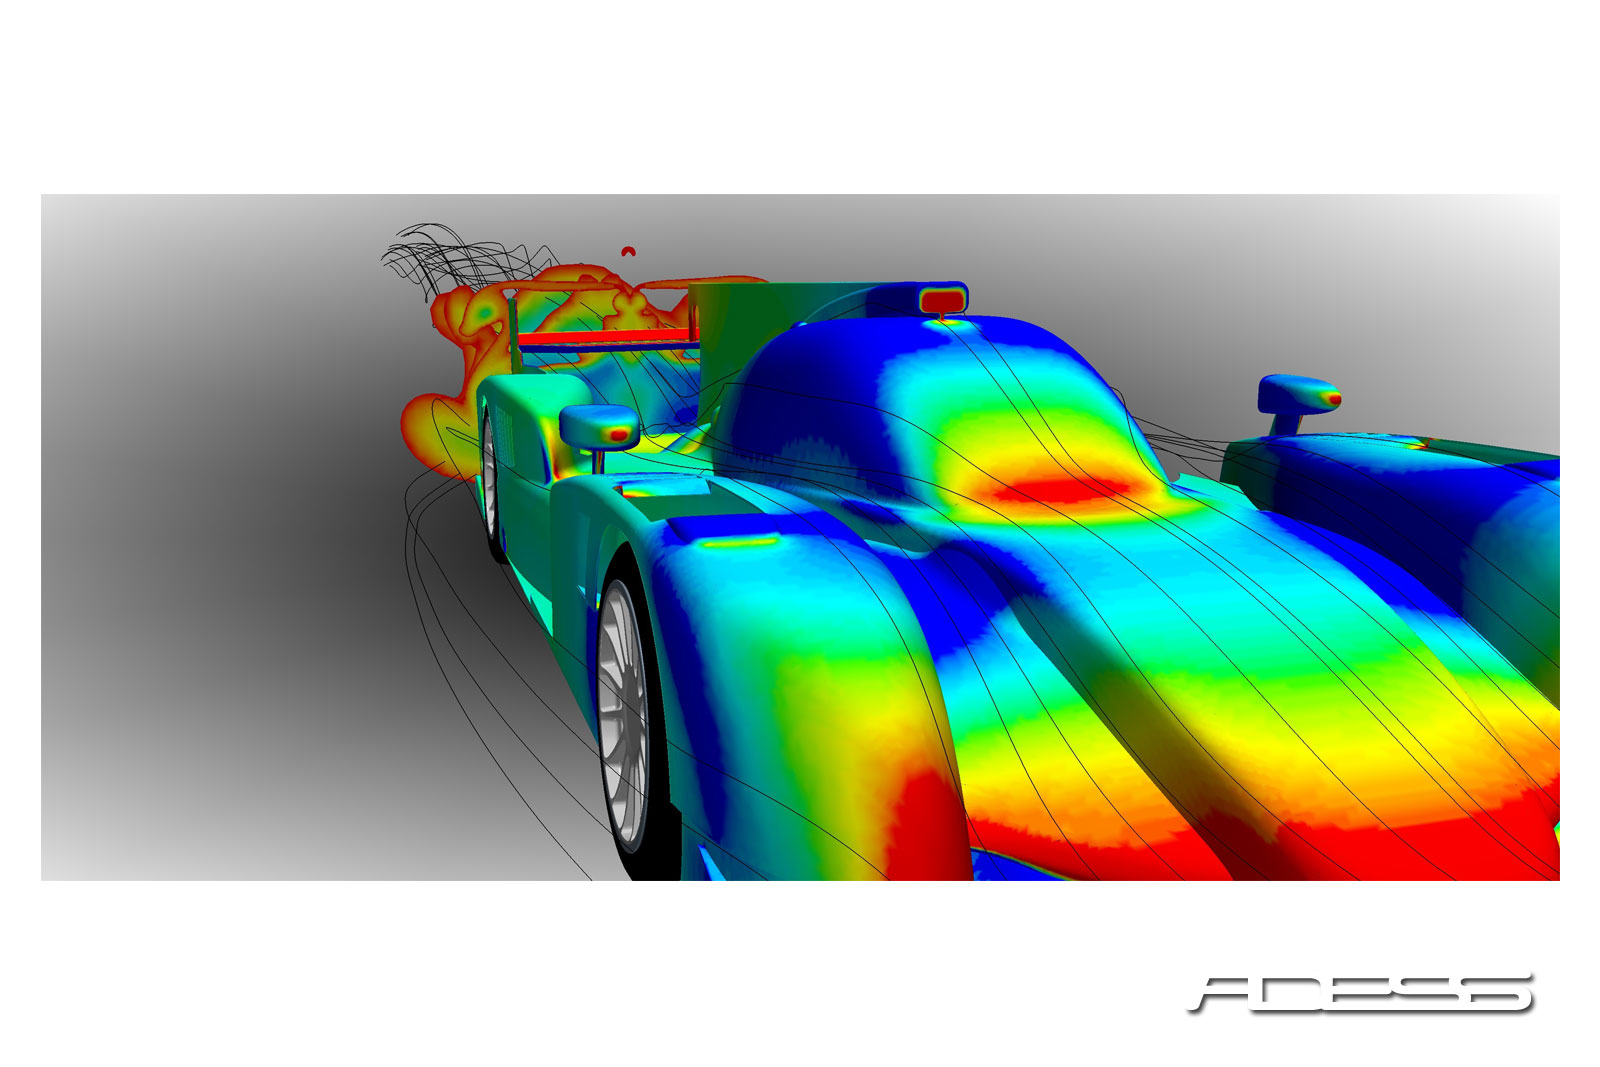 Static pressure distribution and wake behind a Le Mans Prototype